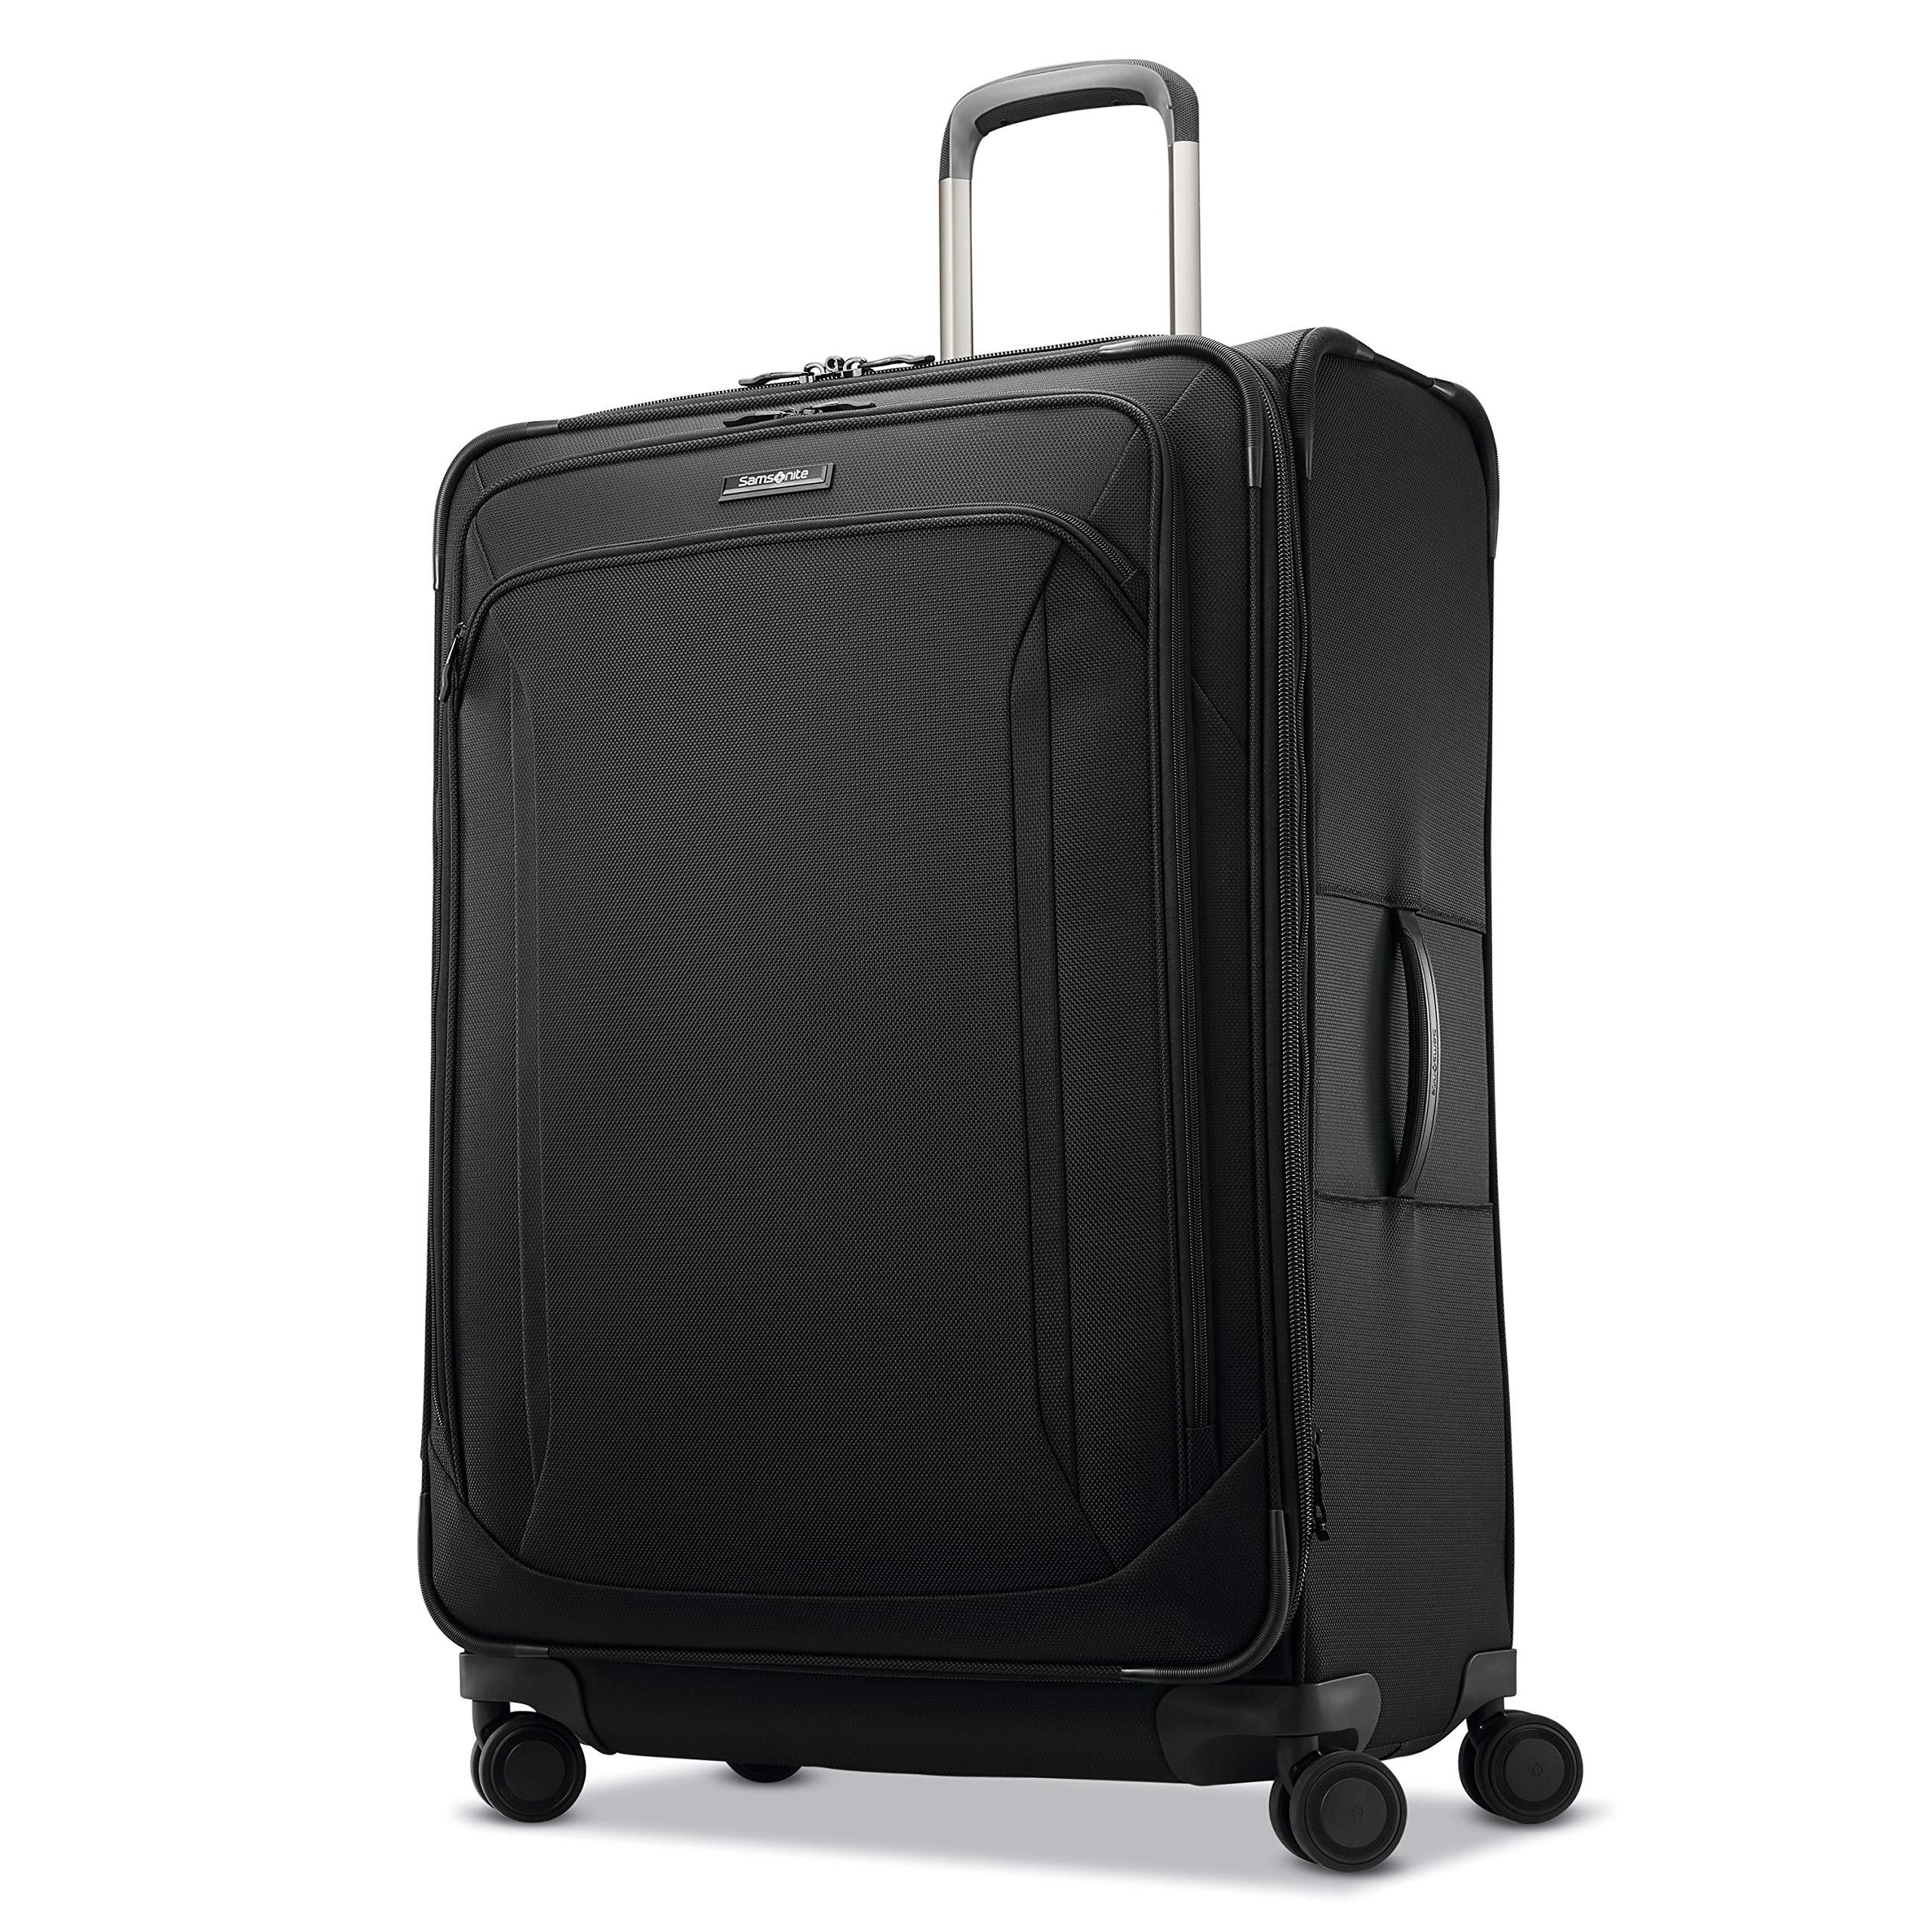 Samsonite Checked-Large, Obsidian Black by Samsonite